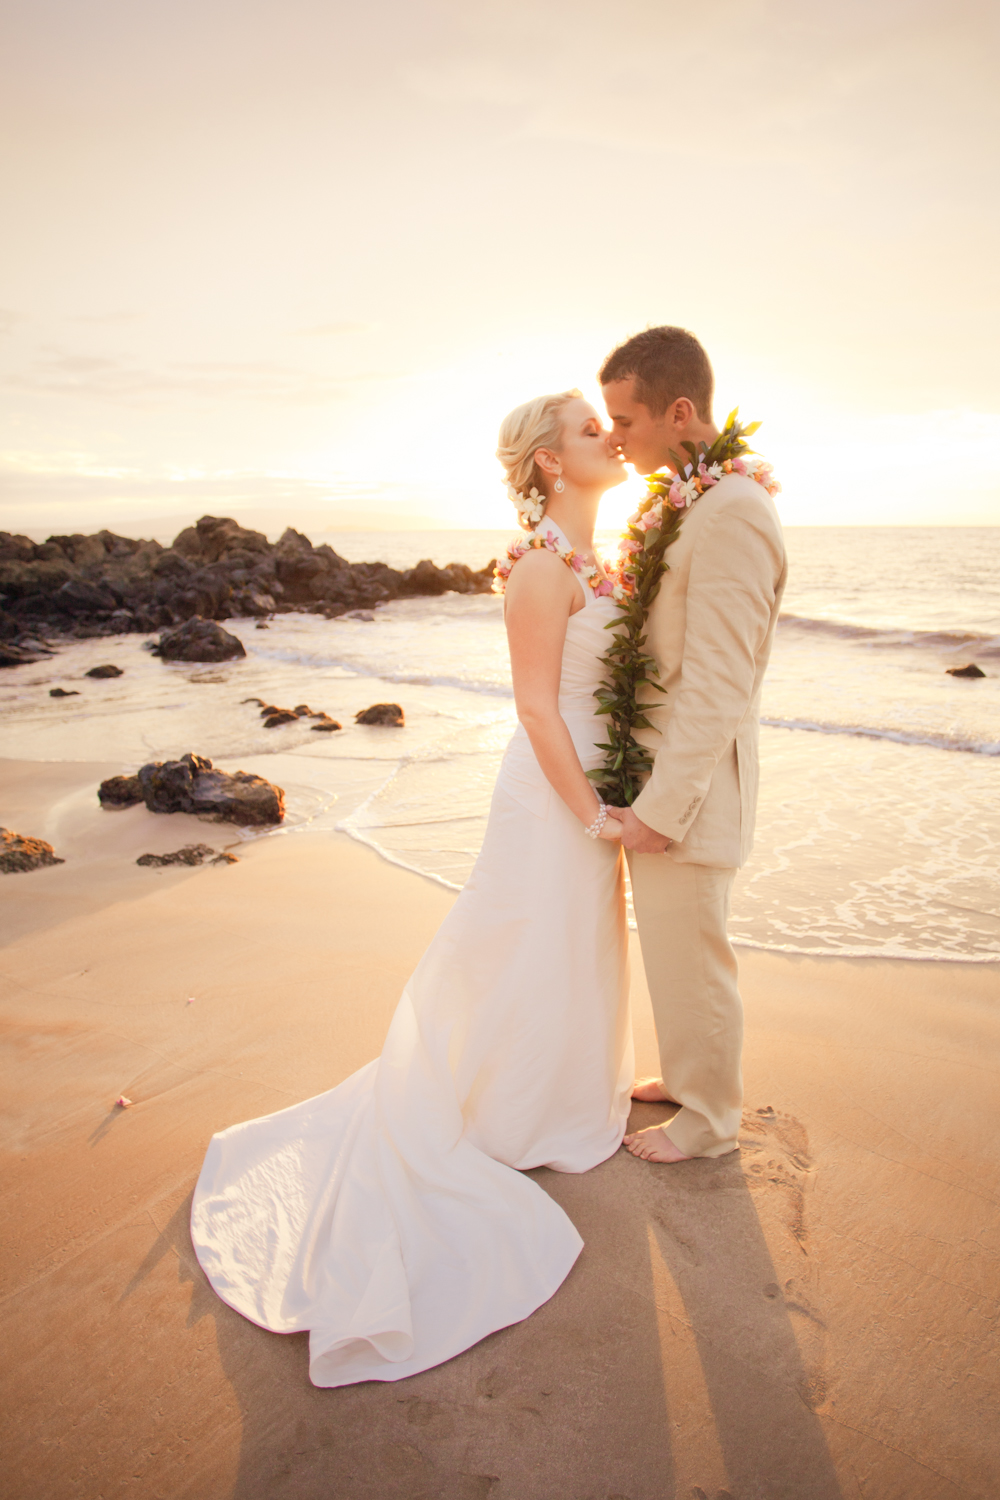 Bride And Groom Kiss On Beach With Beautiful Sunset In